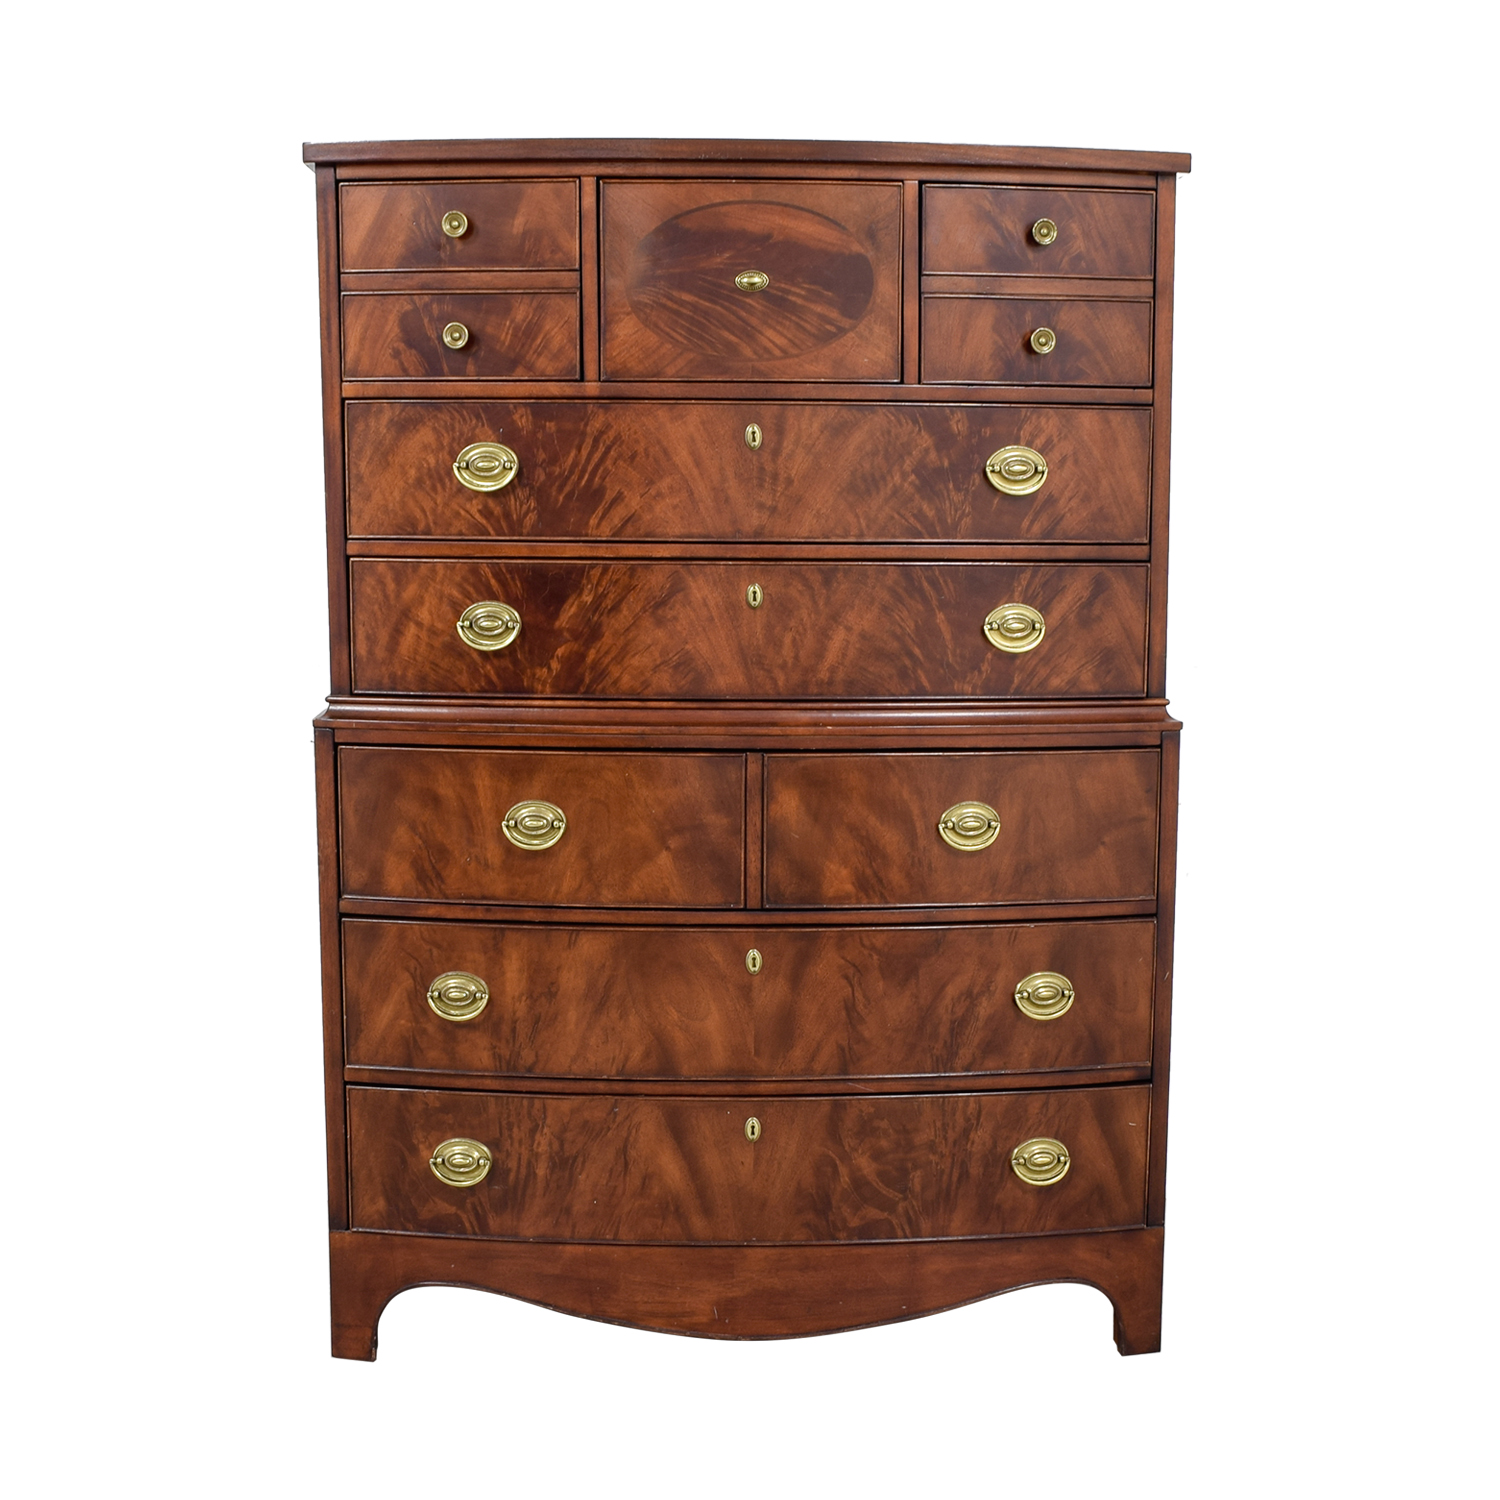 Broyhill Broyhill Anniversary Collection Dresser nj